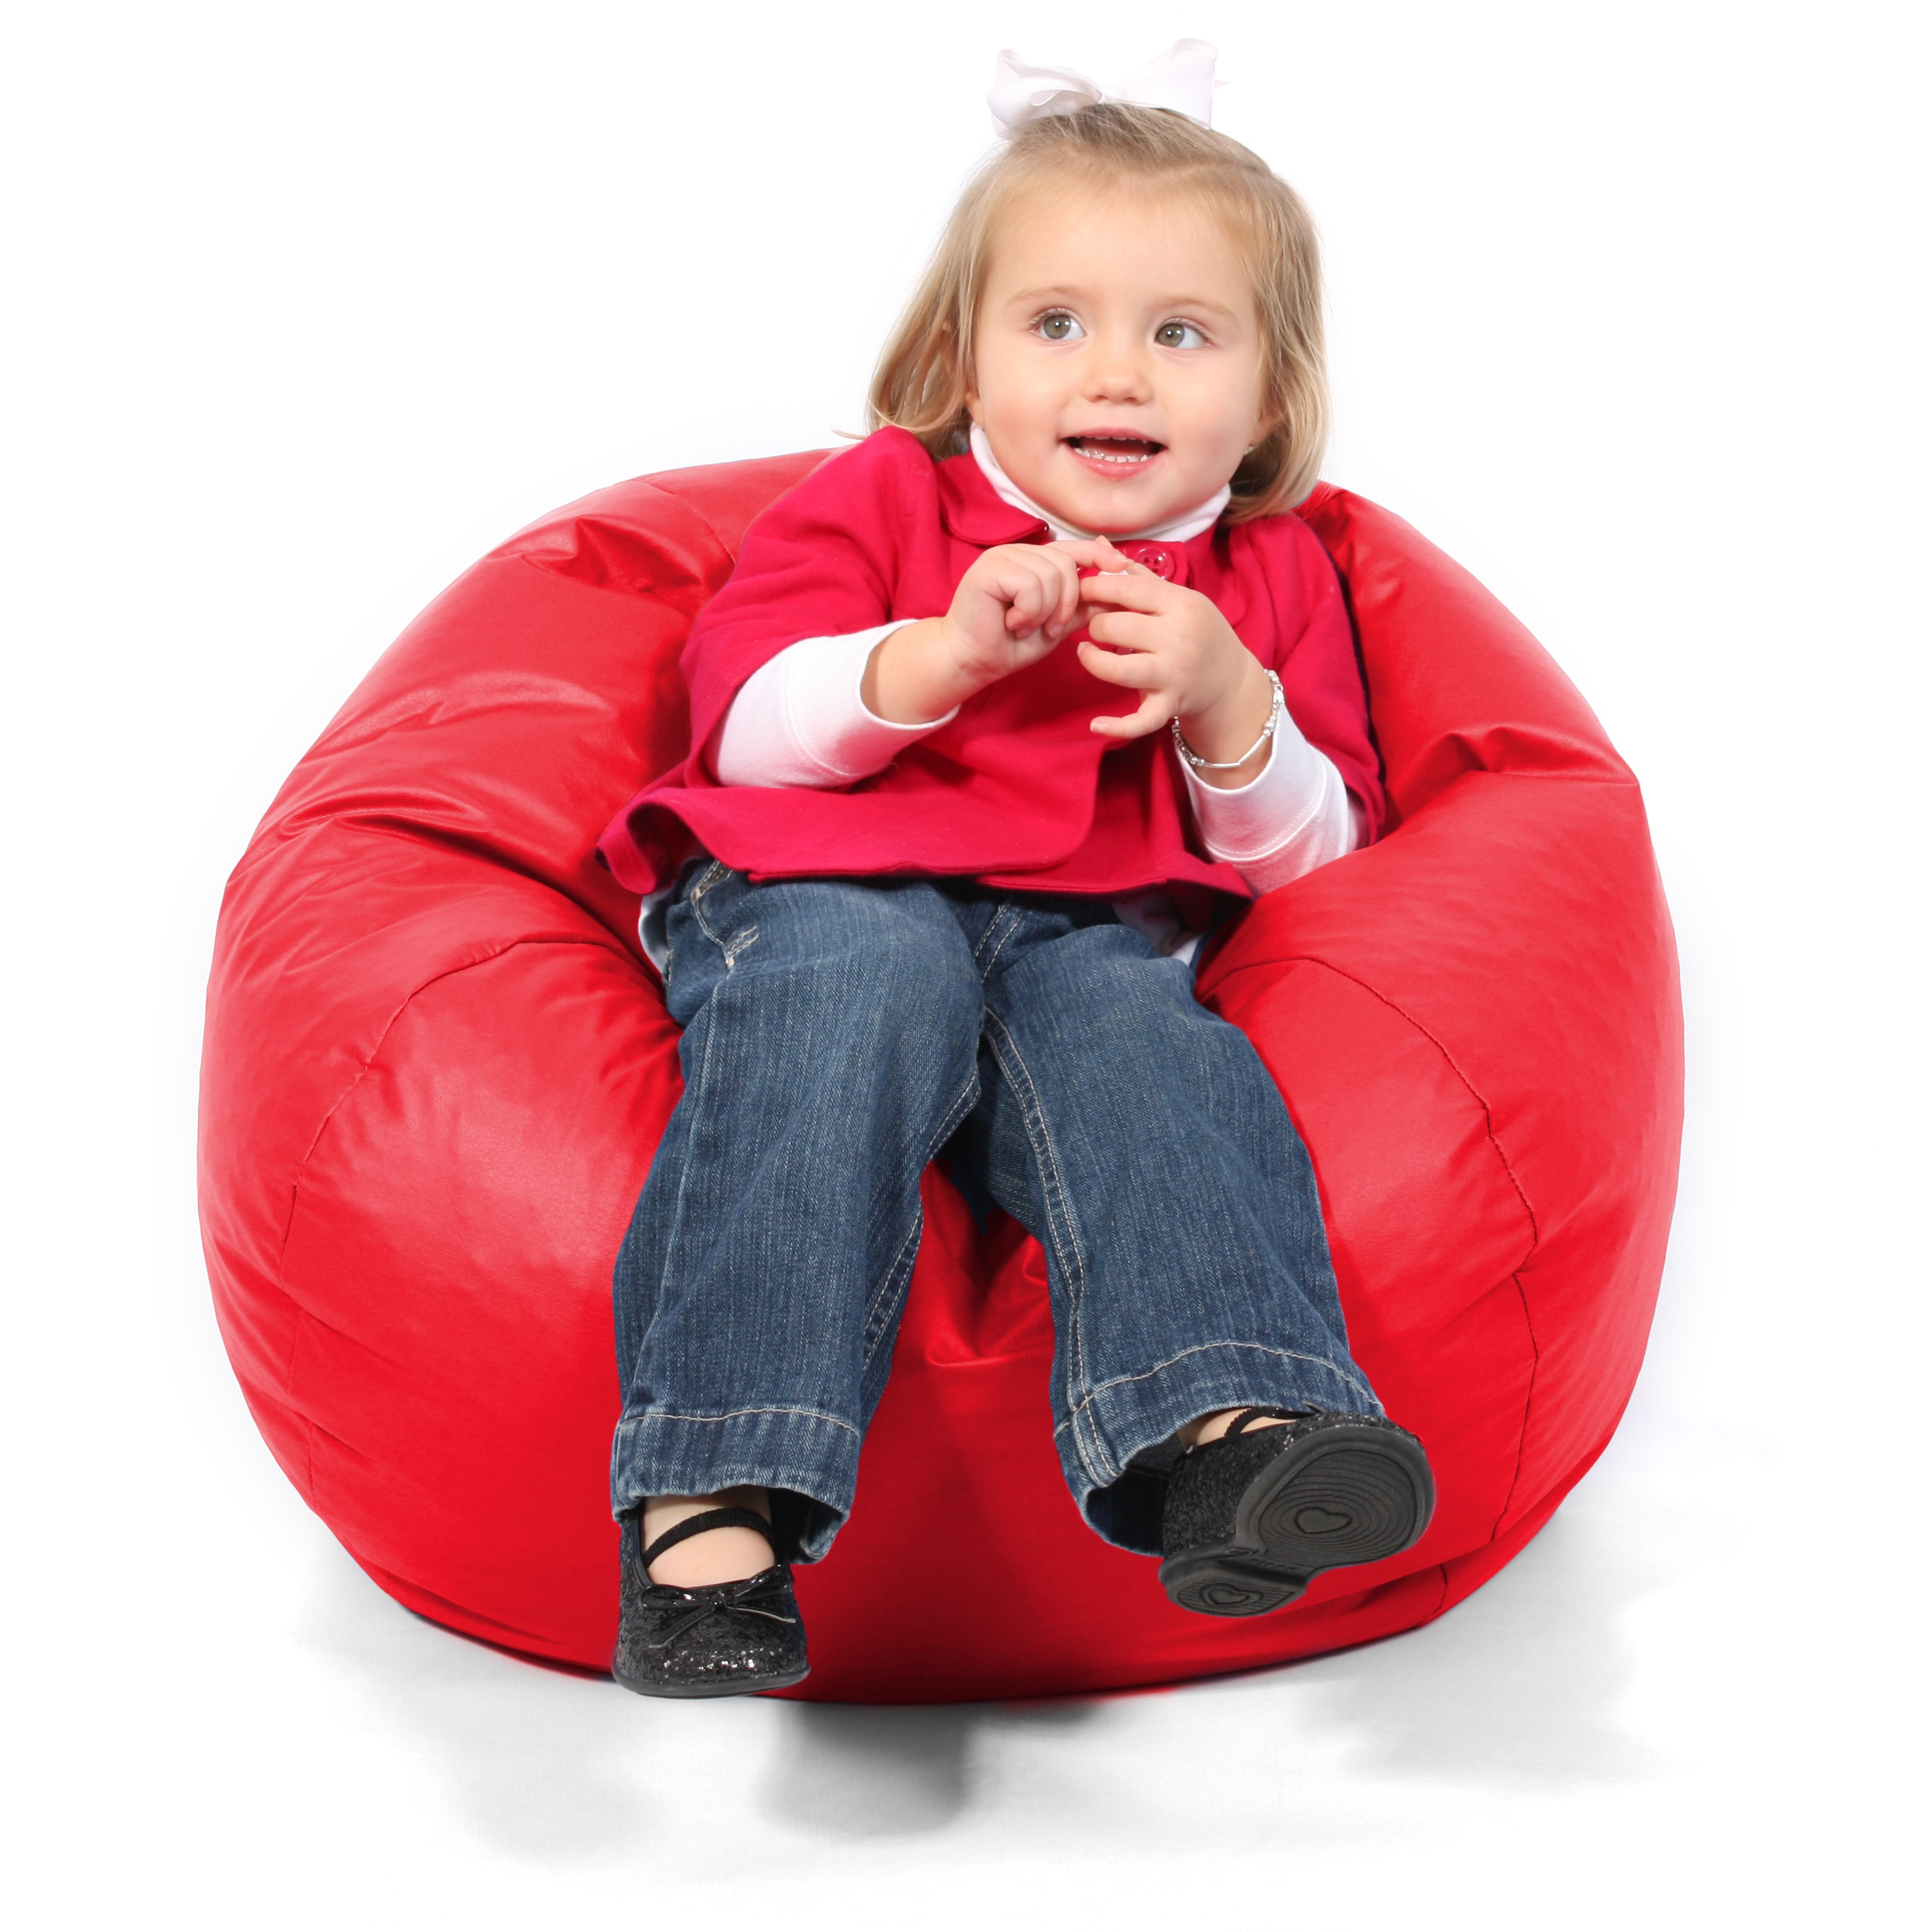 Bean Bag Chairs For Kids Home & Interior Design